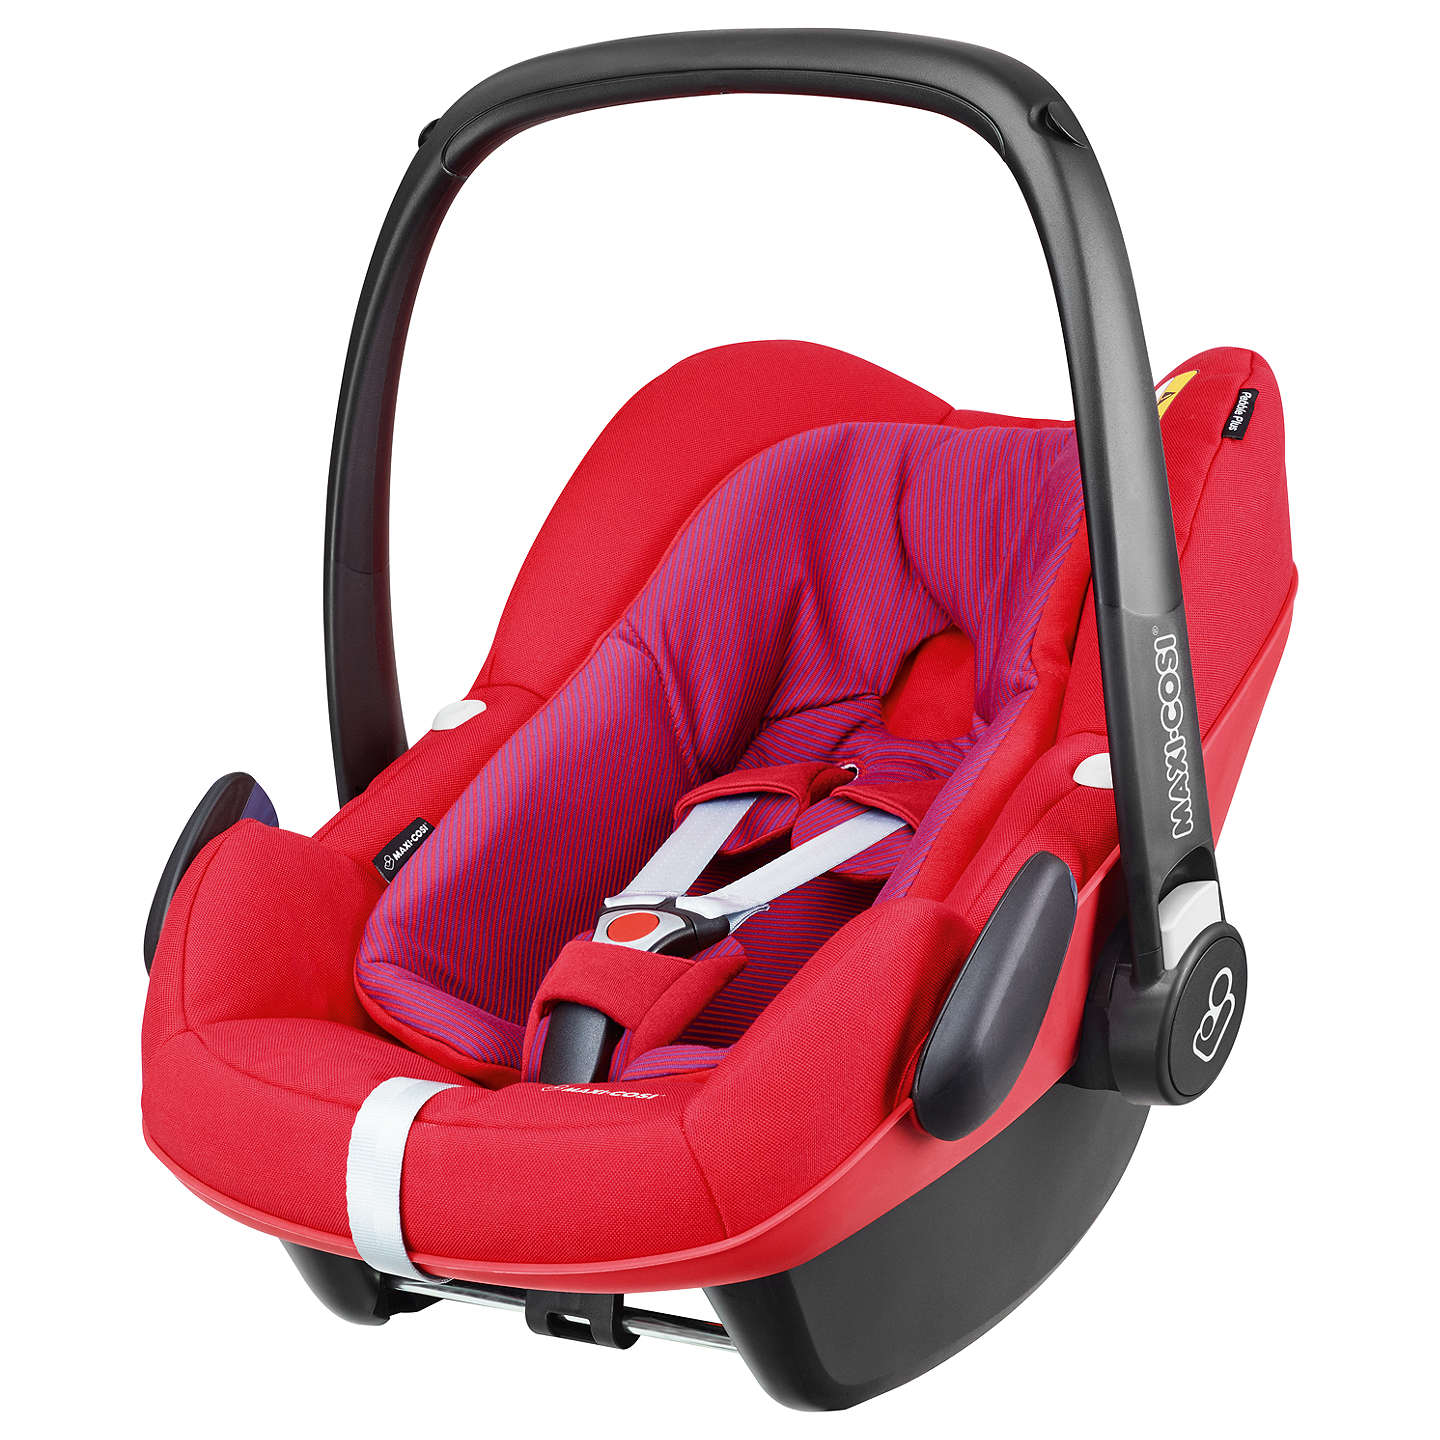 BuyMaxi-Cosi Pebble Plus i-Size Group 0+ Baby Car Seat, Red Orchid Online at johnlewis.com